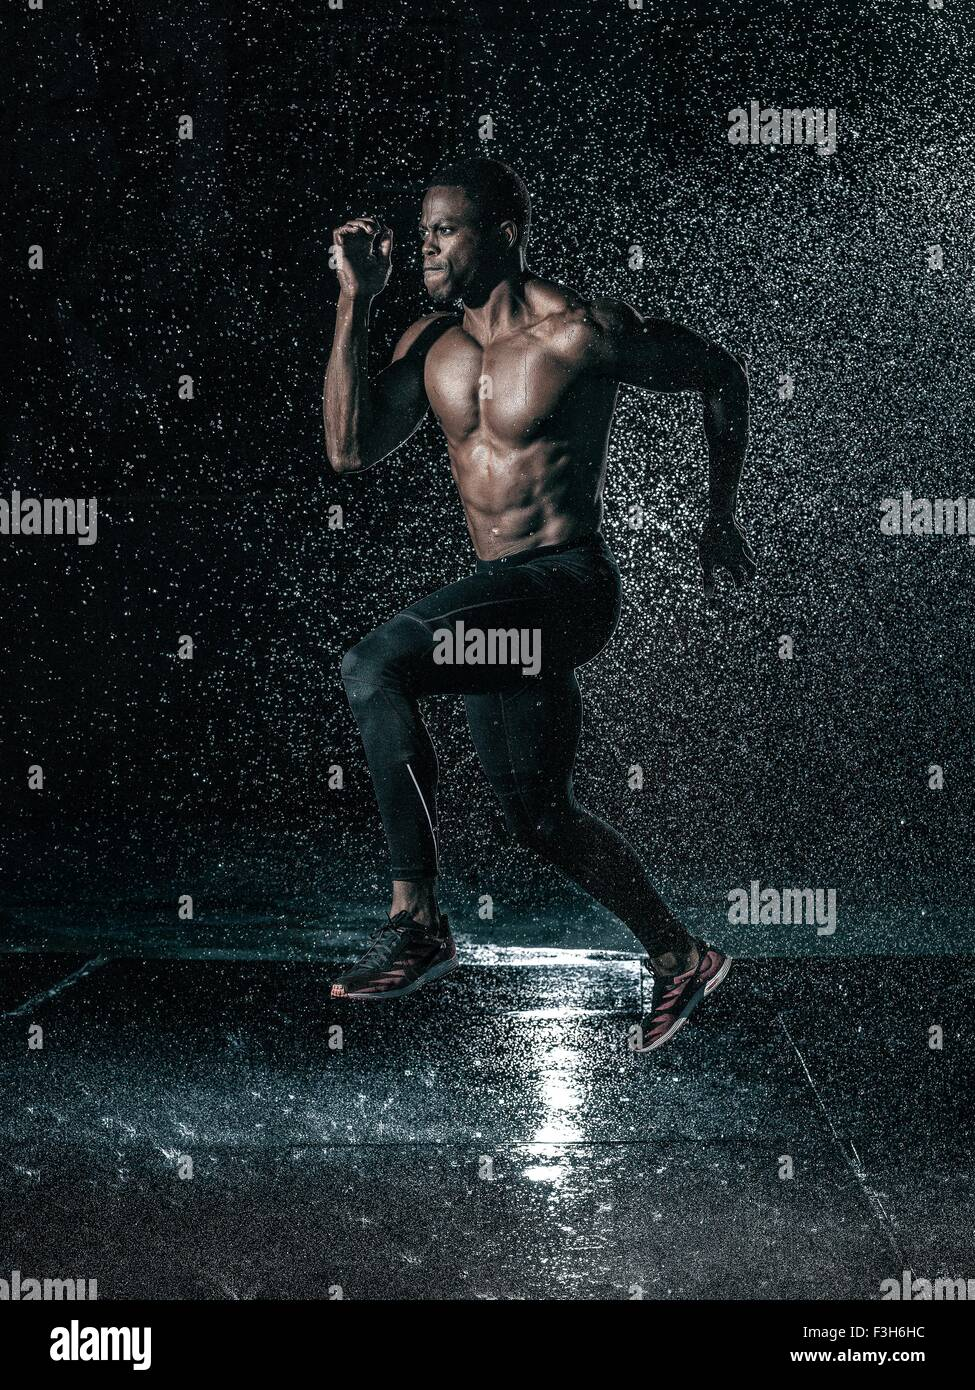 MId adult man, outdoors, running in rain - Stock Image